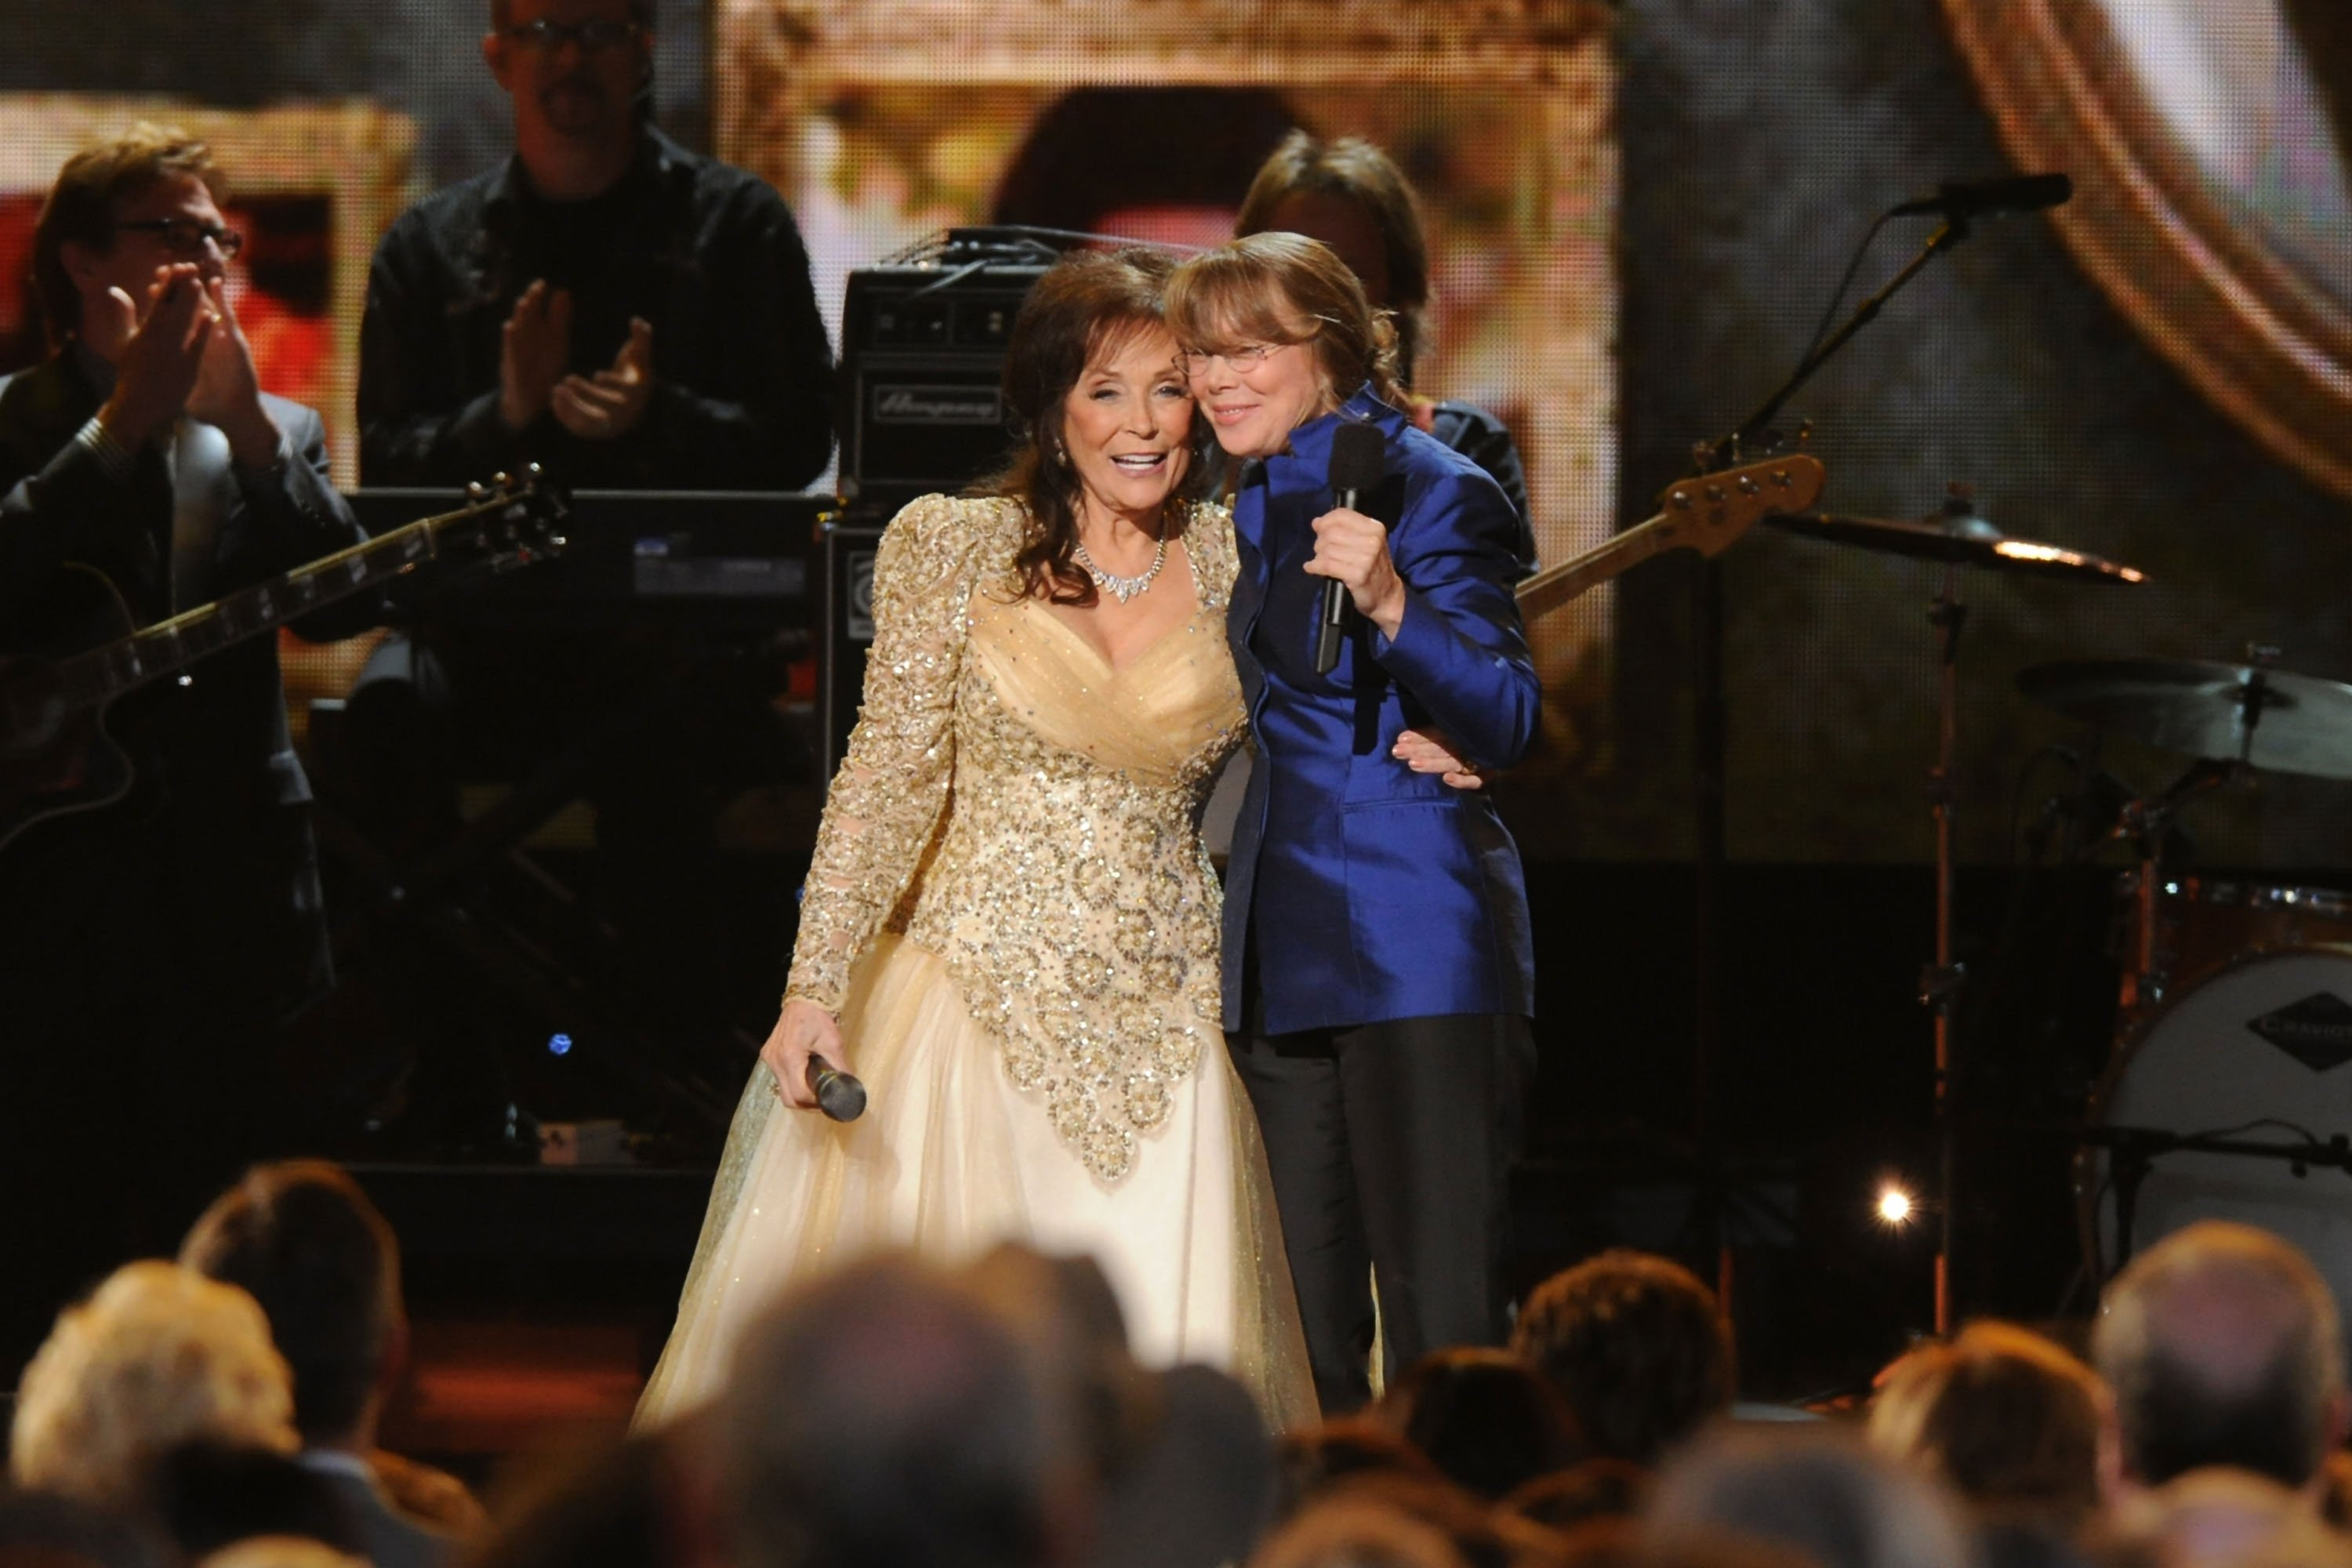 Loretta Lynn and actress Sissy Spacek speak at the 44th Annual CMA Awards at the Bridgestone Arena on November 10, 2010, in Nashville, Tennessee. | Source: Getty Images.